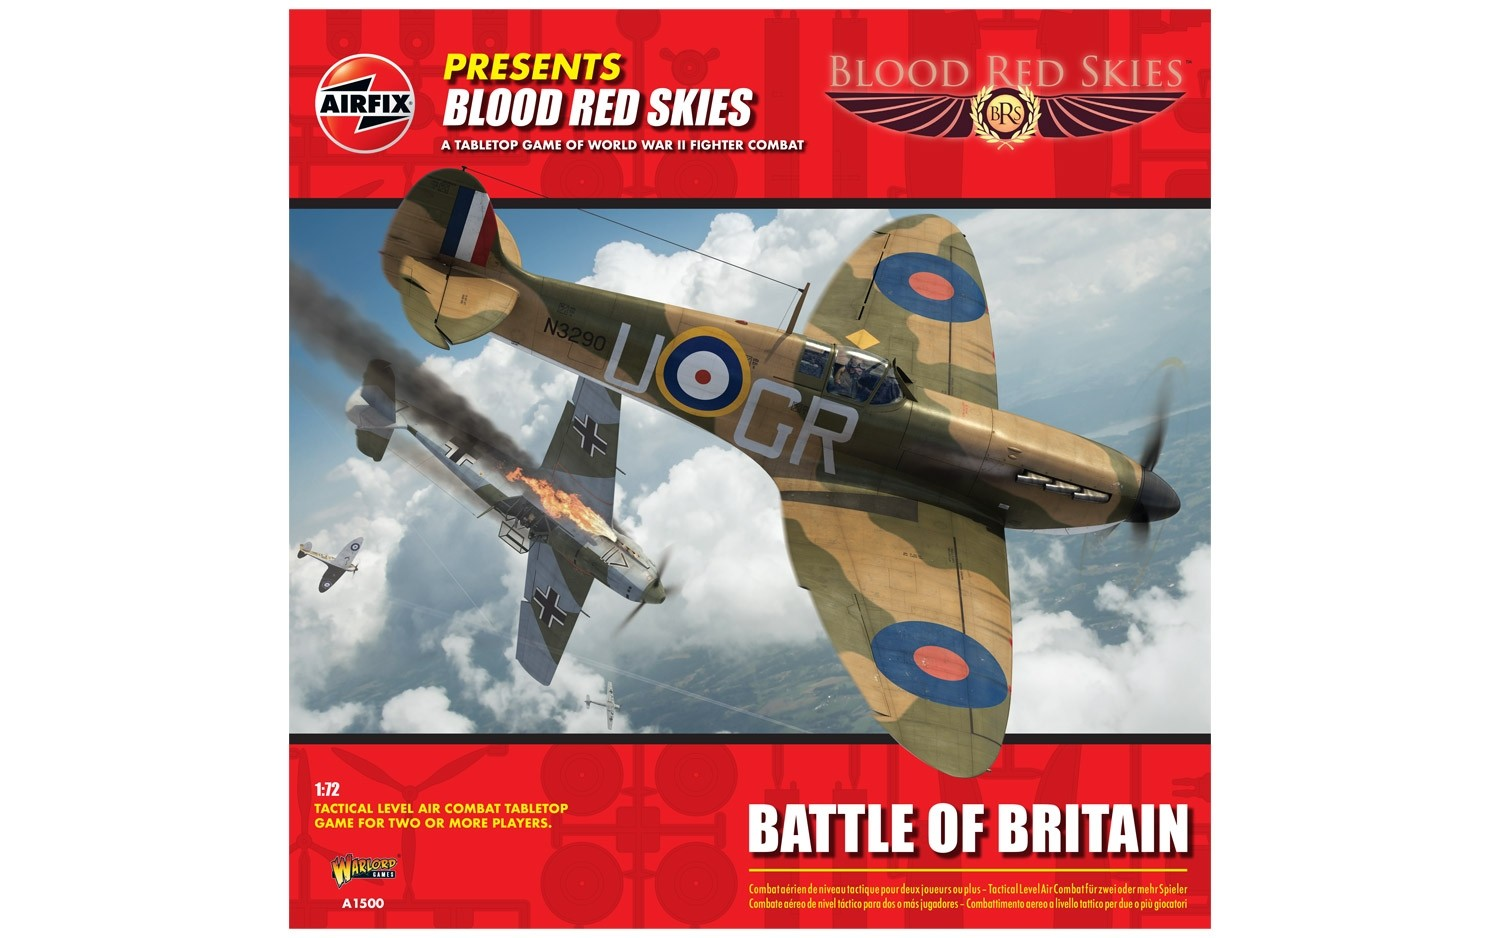 airfix warlord games blood red skies starter box 2